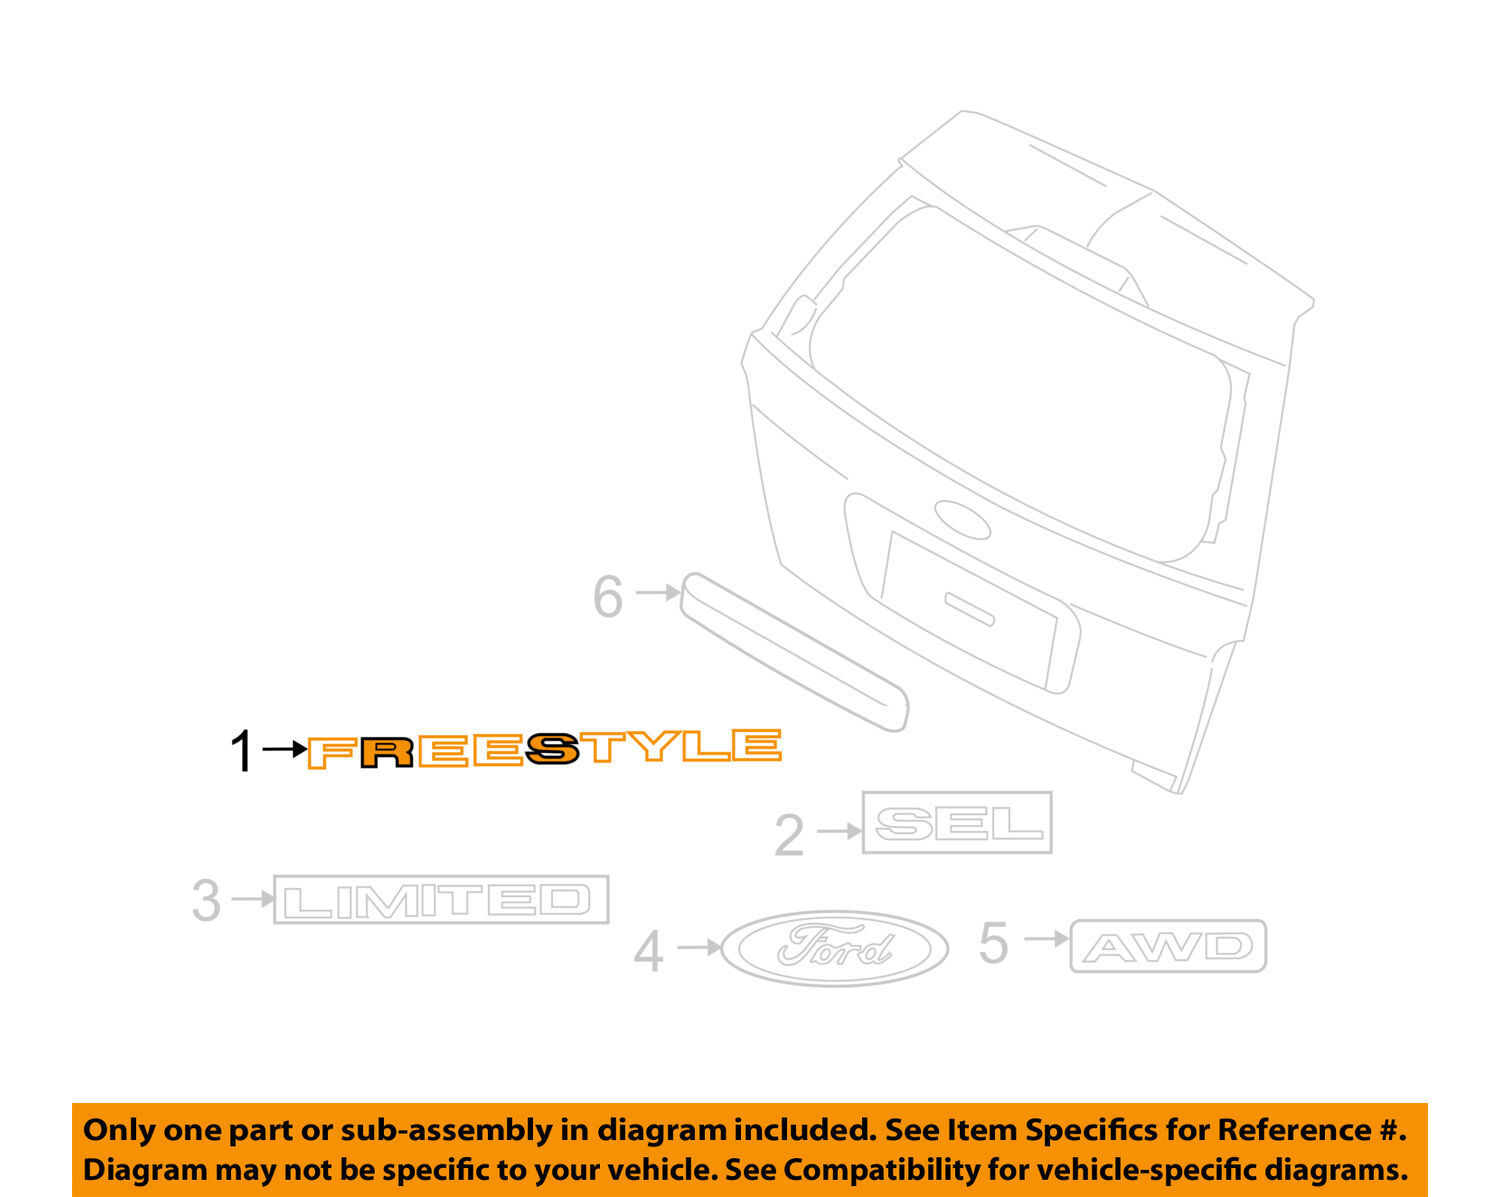 2005 Ford Freestyle Parts Diagram Motor Mount Transmission Wiring Liftgate Electrical Drawing List 2006 2007